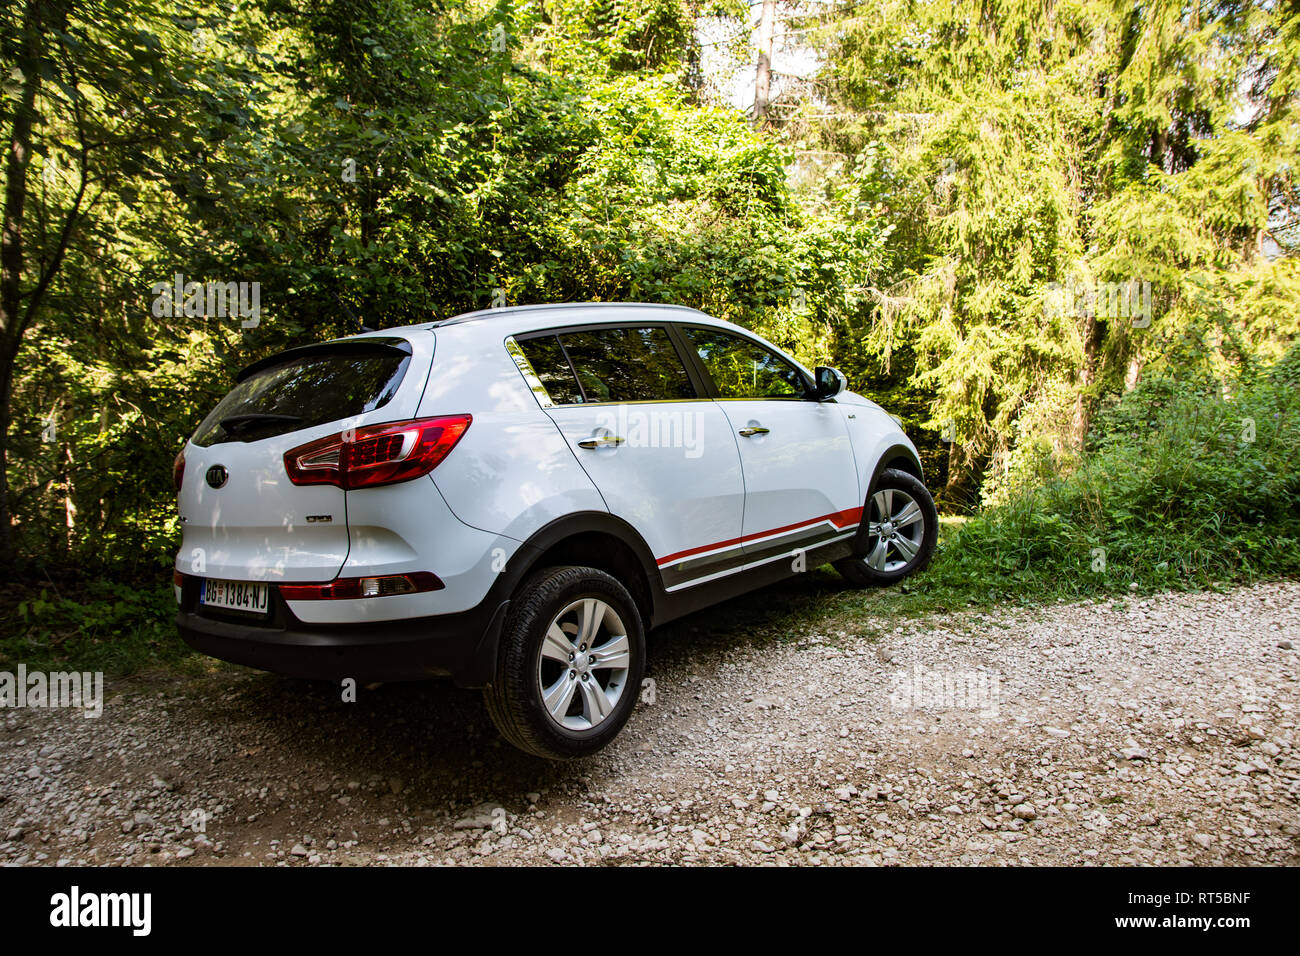 Kia Sportage 2.0 CRDI awd or 4x4, white color, stuck on a trench on a Tara mountain near lake Zaovine, with one wheel in the air, and others on grass. Stock Photo